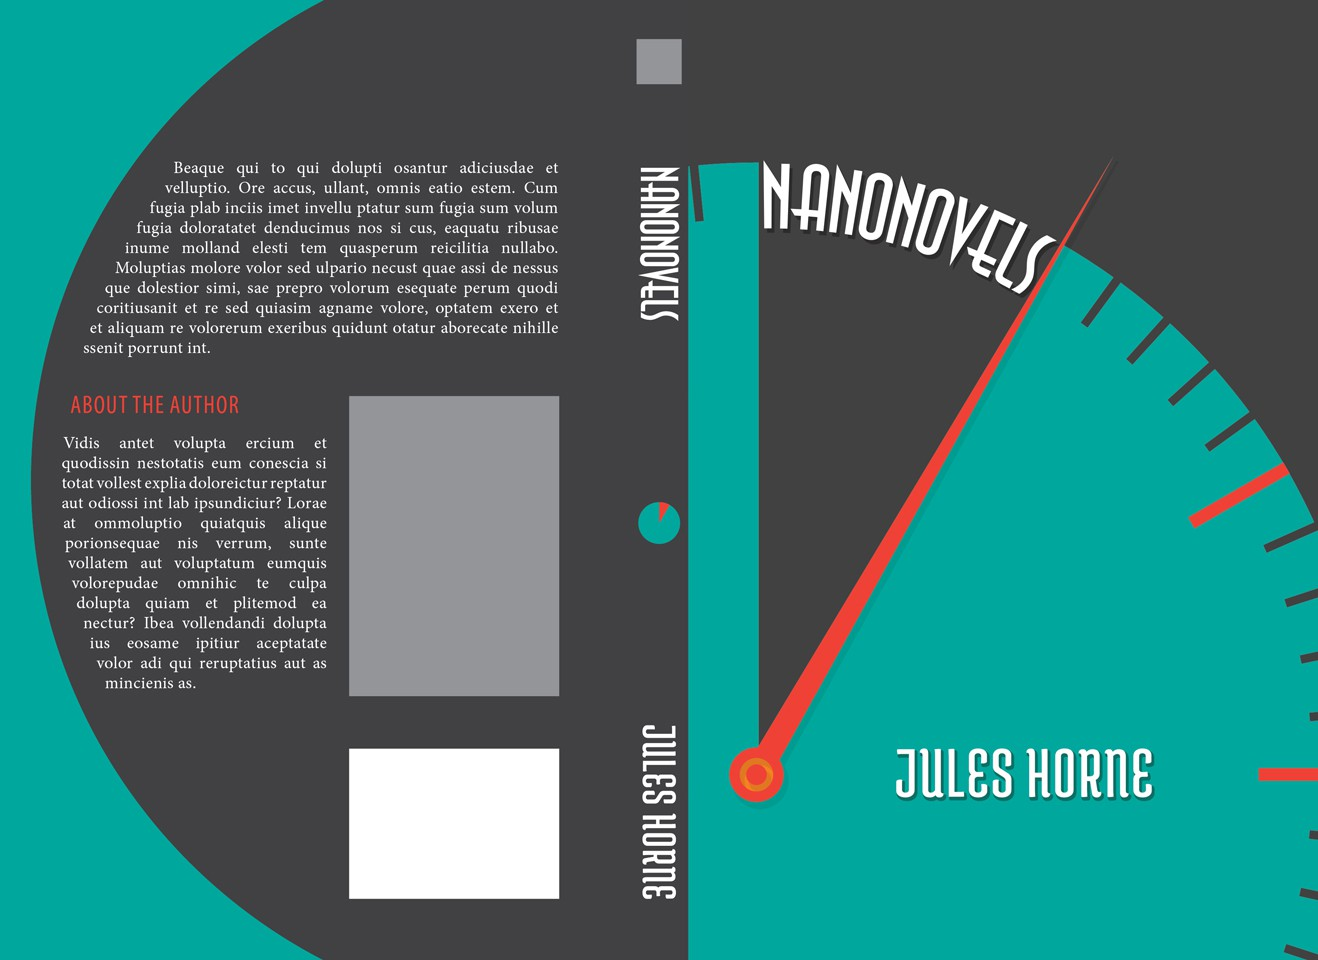 Ex BBC writer - need quirky minimalist book cover, Kafka/Atwood/Borges flavour - can you help?